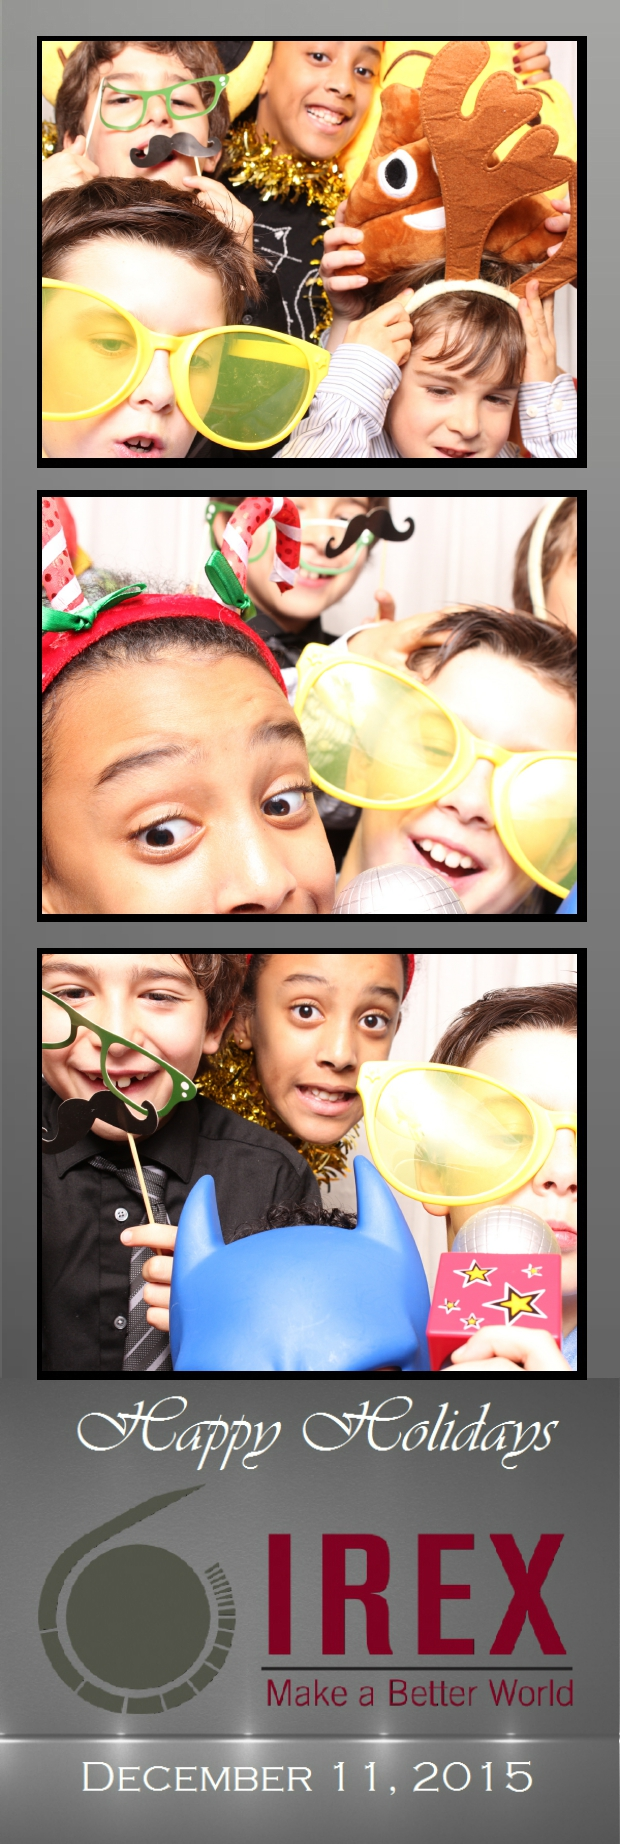 Guest House Events Photo Booth Strips IREX (87).jpg